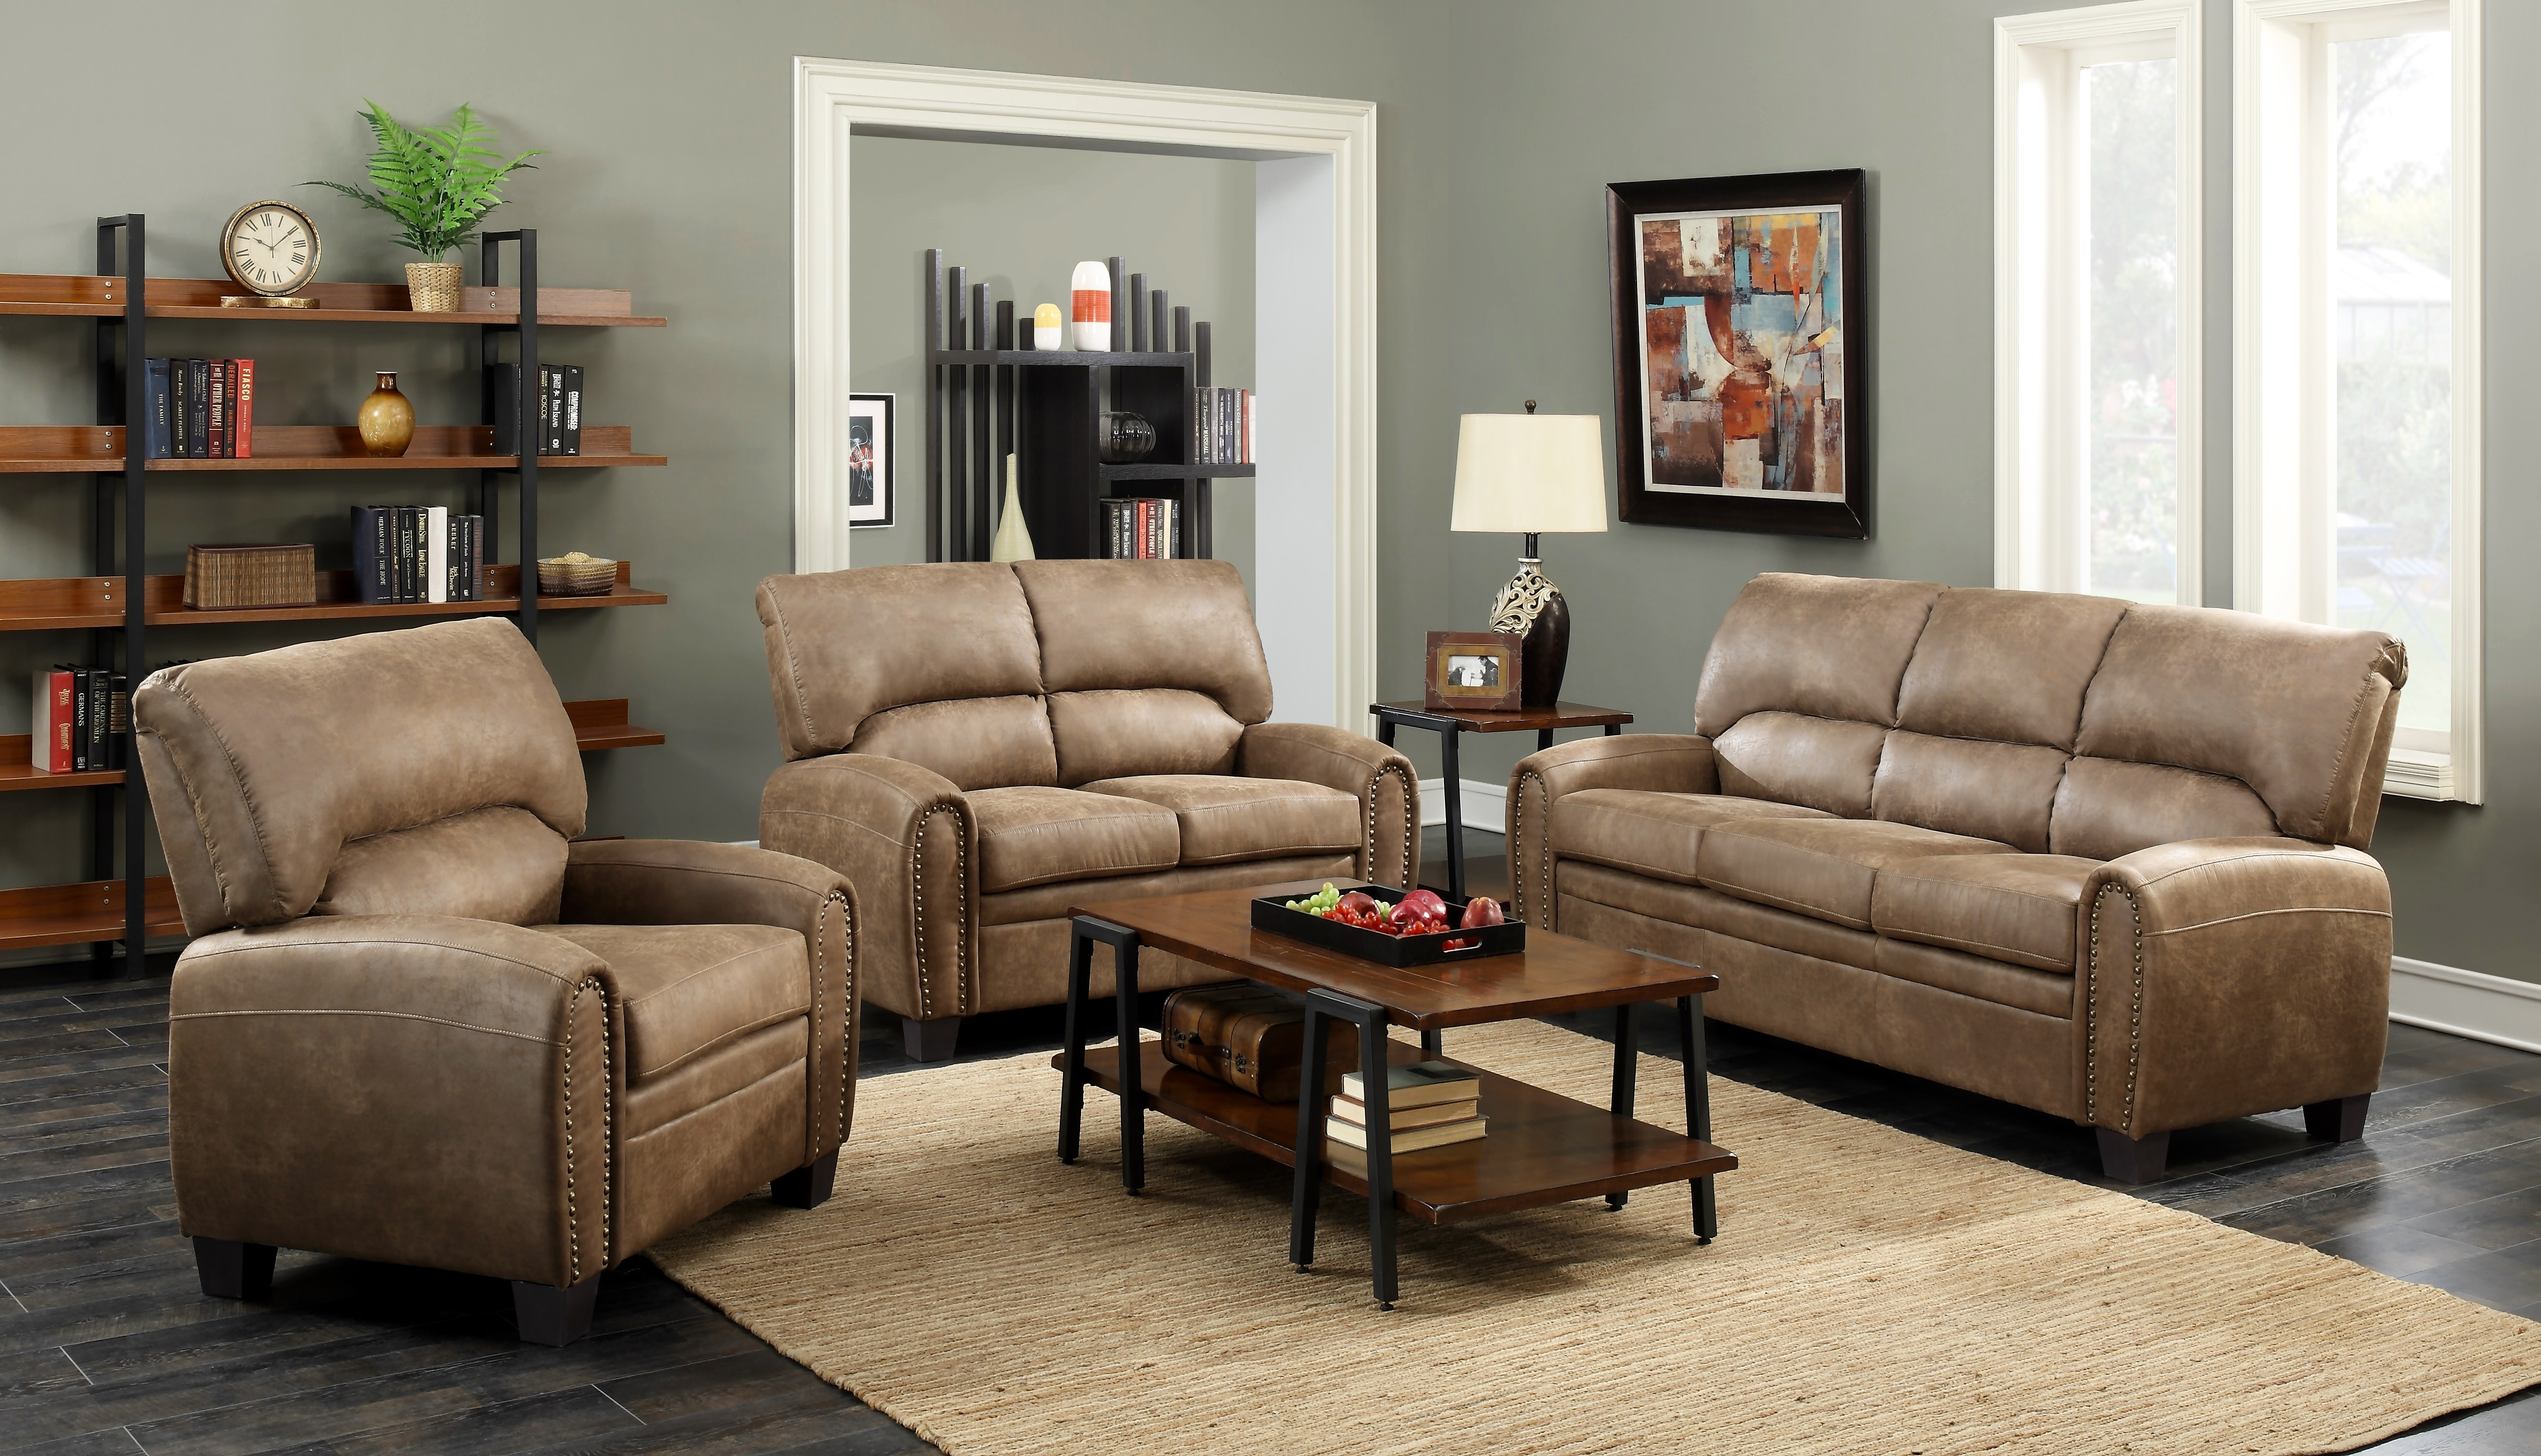 Vcf Sofa Chaise | Baci Living Room For Mcdade Graphite 2 Piece Sectionals With Raf Chaise (Image 21 of 25)